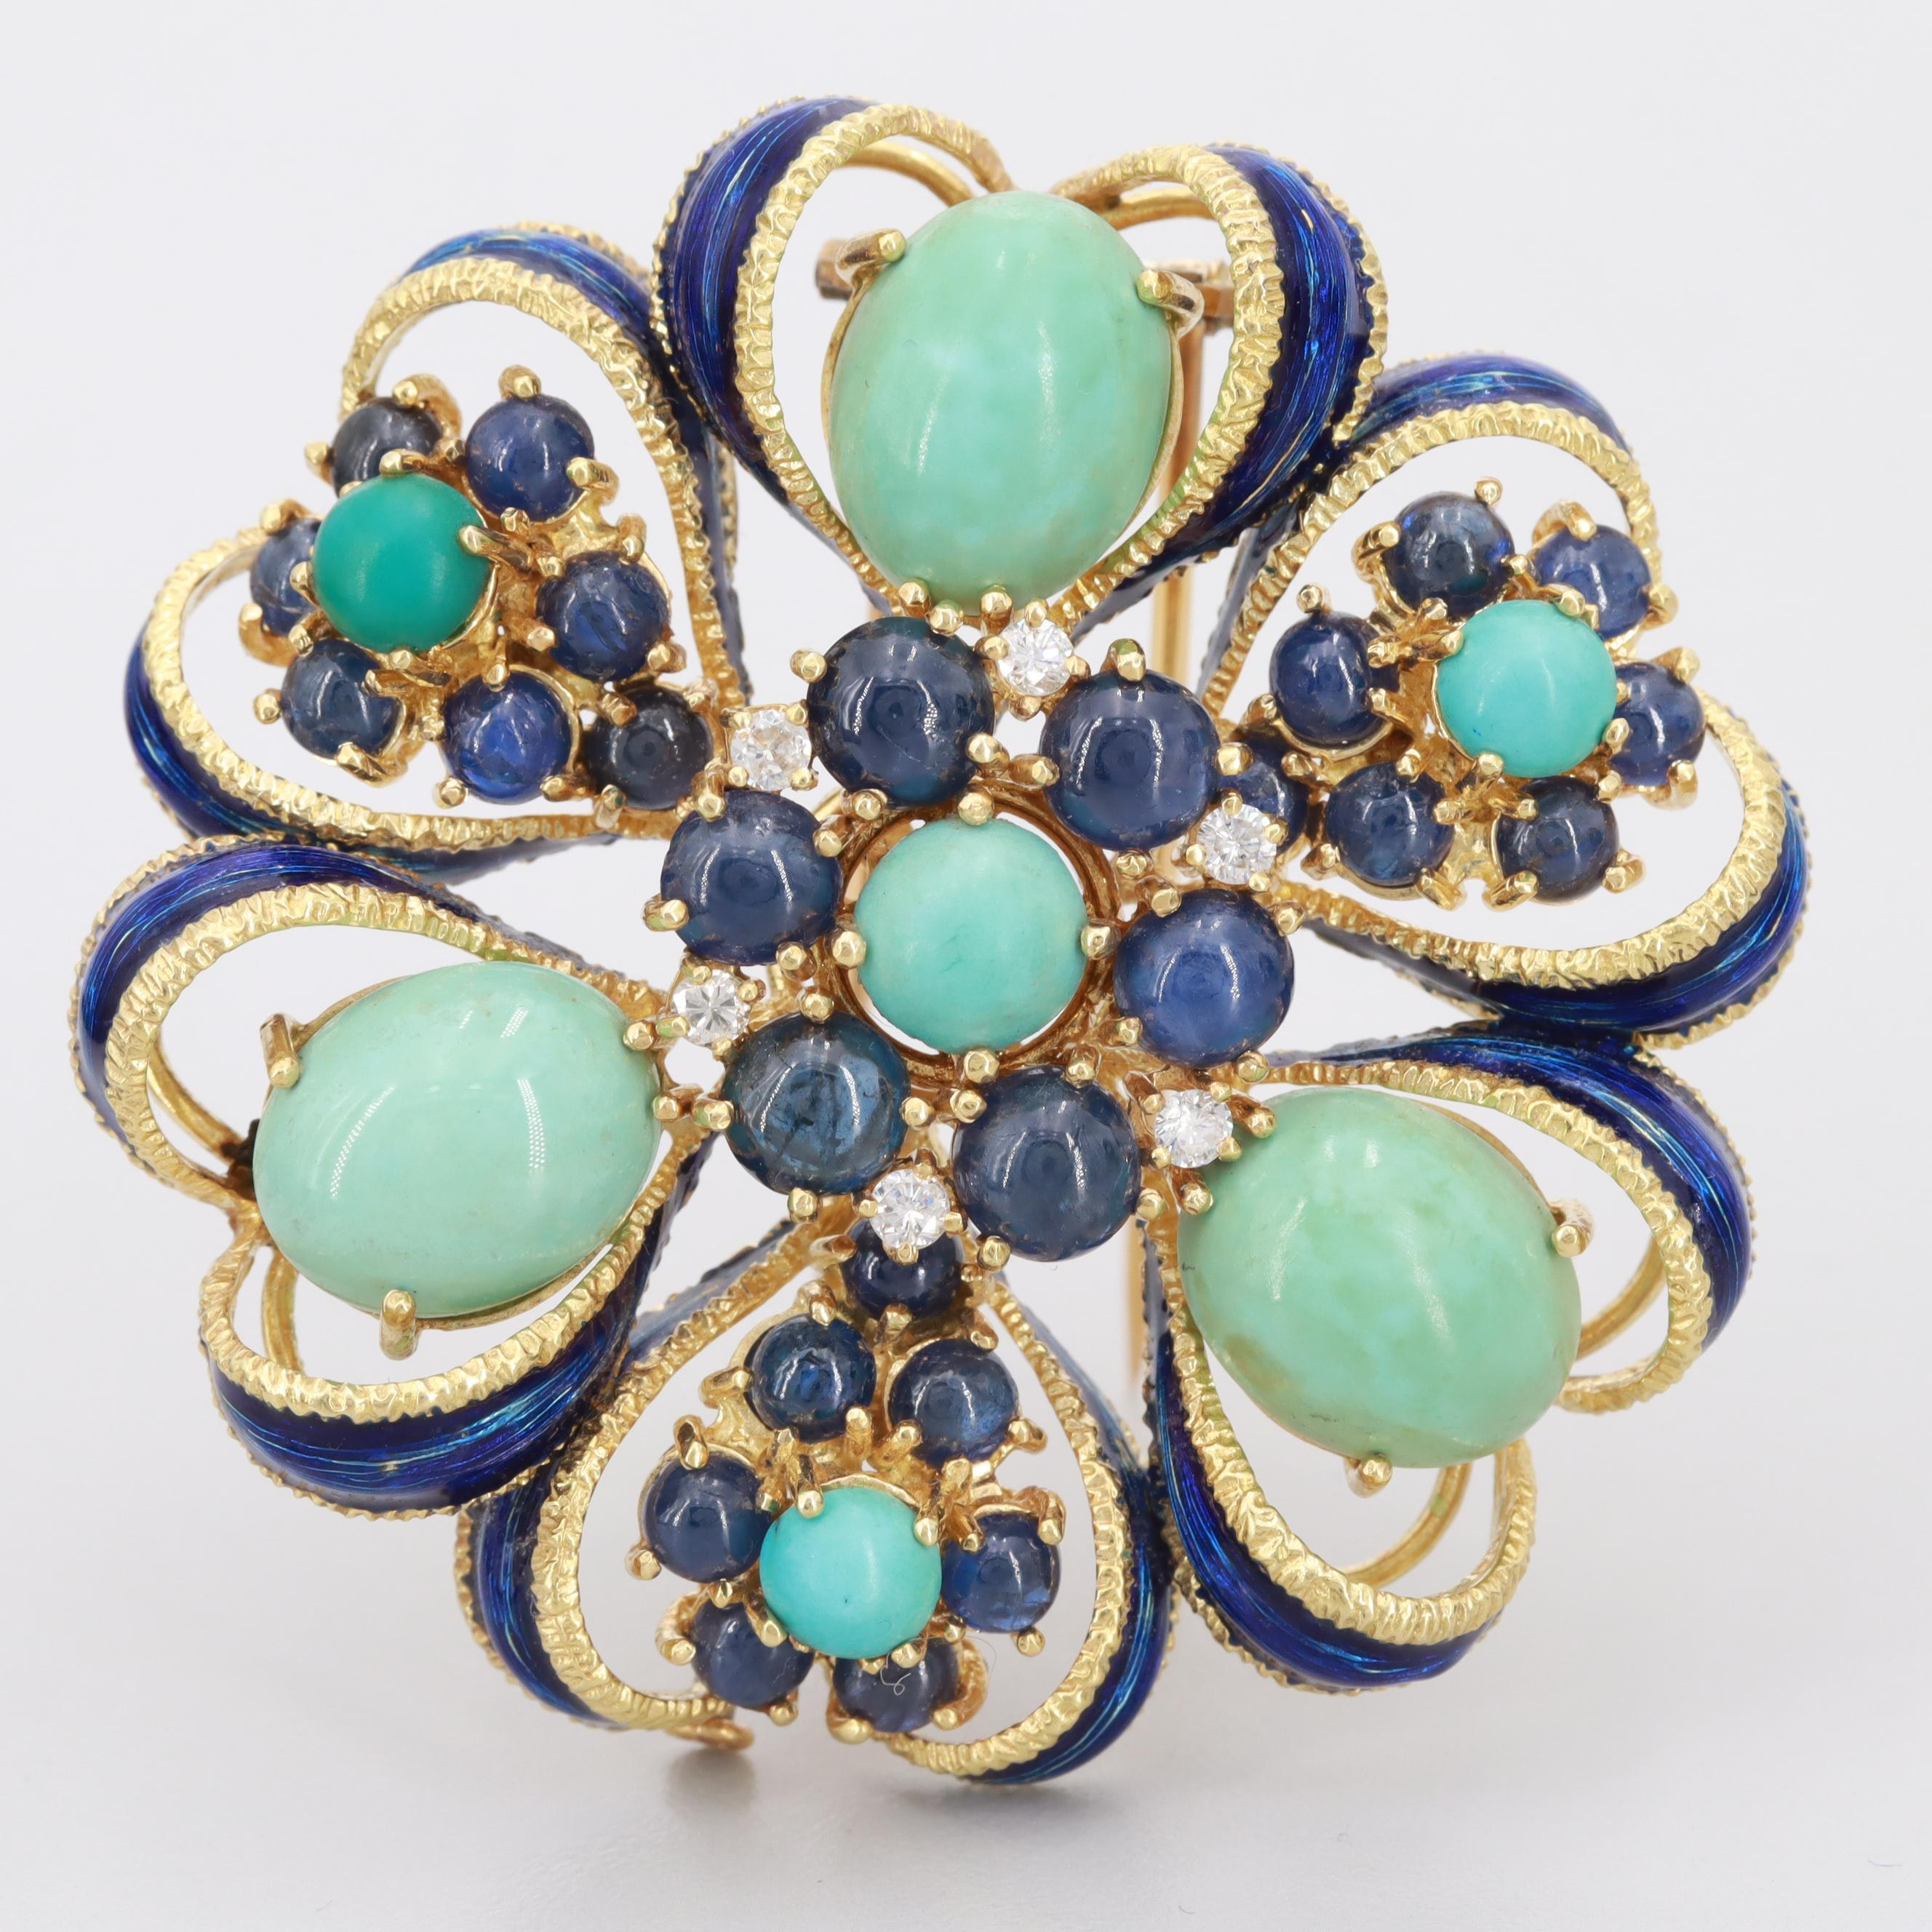 Circa 1950s-1960s French 18K Gold Turquoise, Blue Sapphire and Diamond Fur Clip